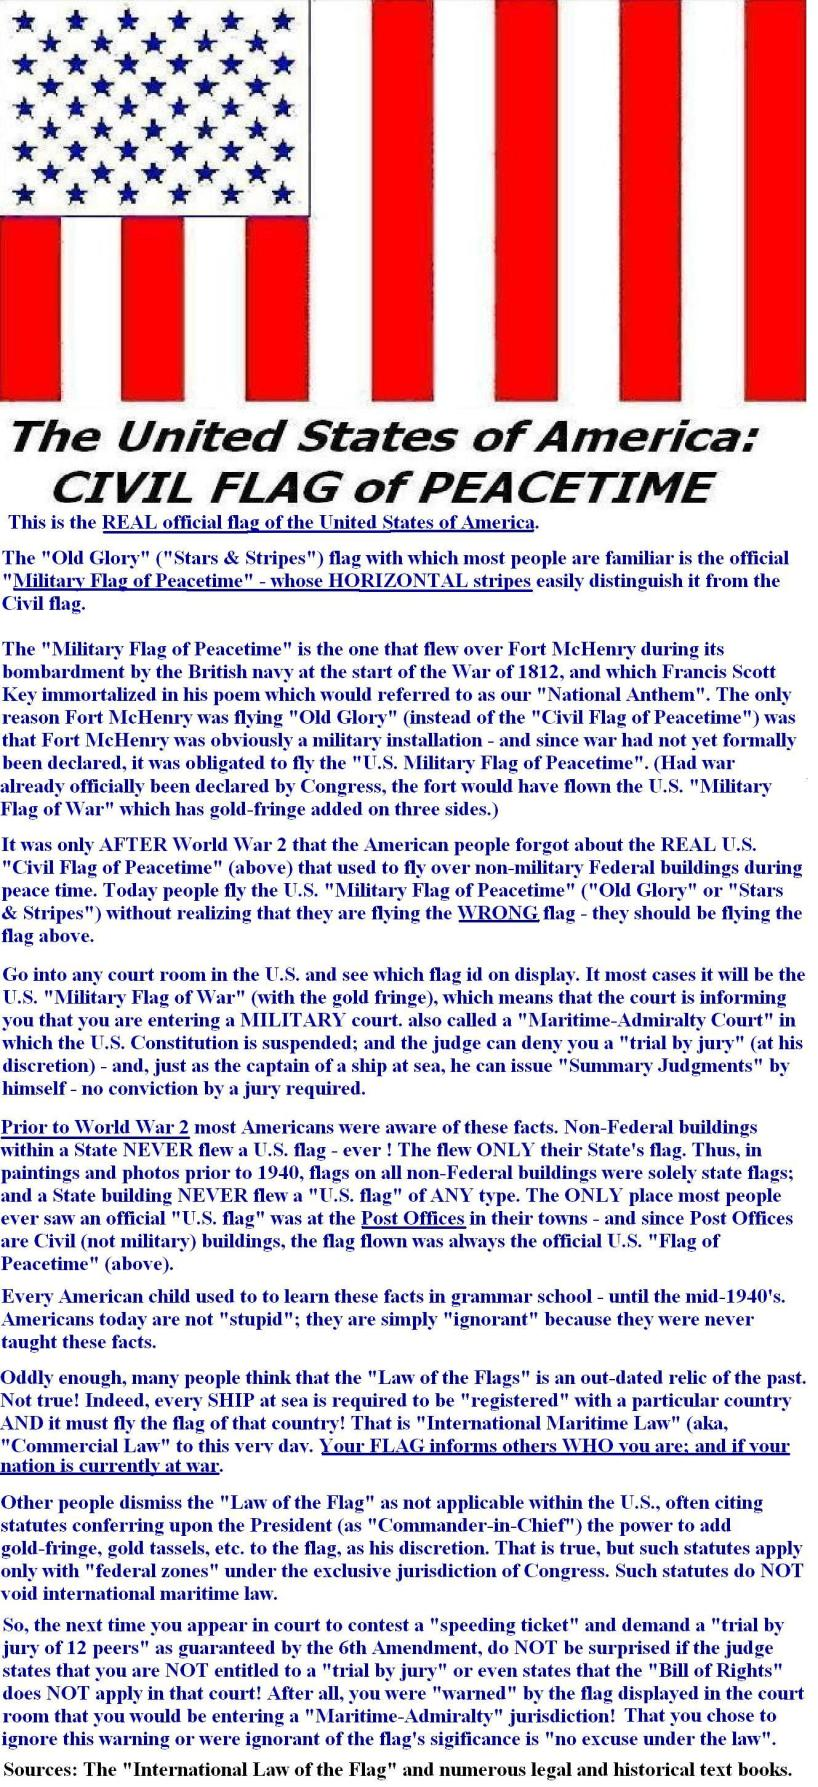 us_civil_flag_of_peacetime__Extensive_Notes_2